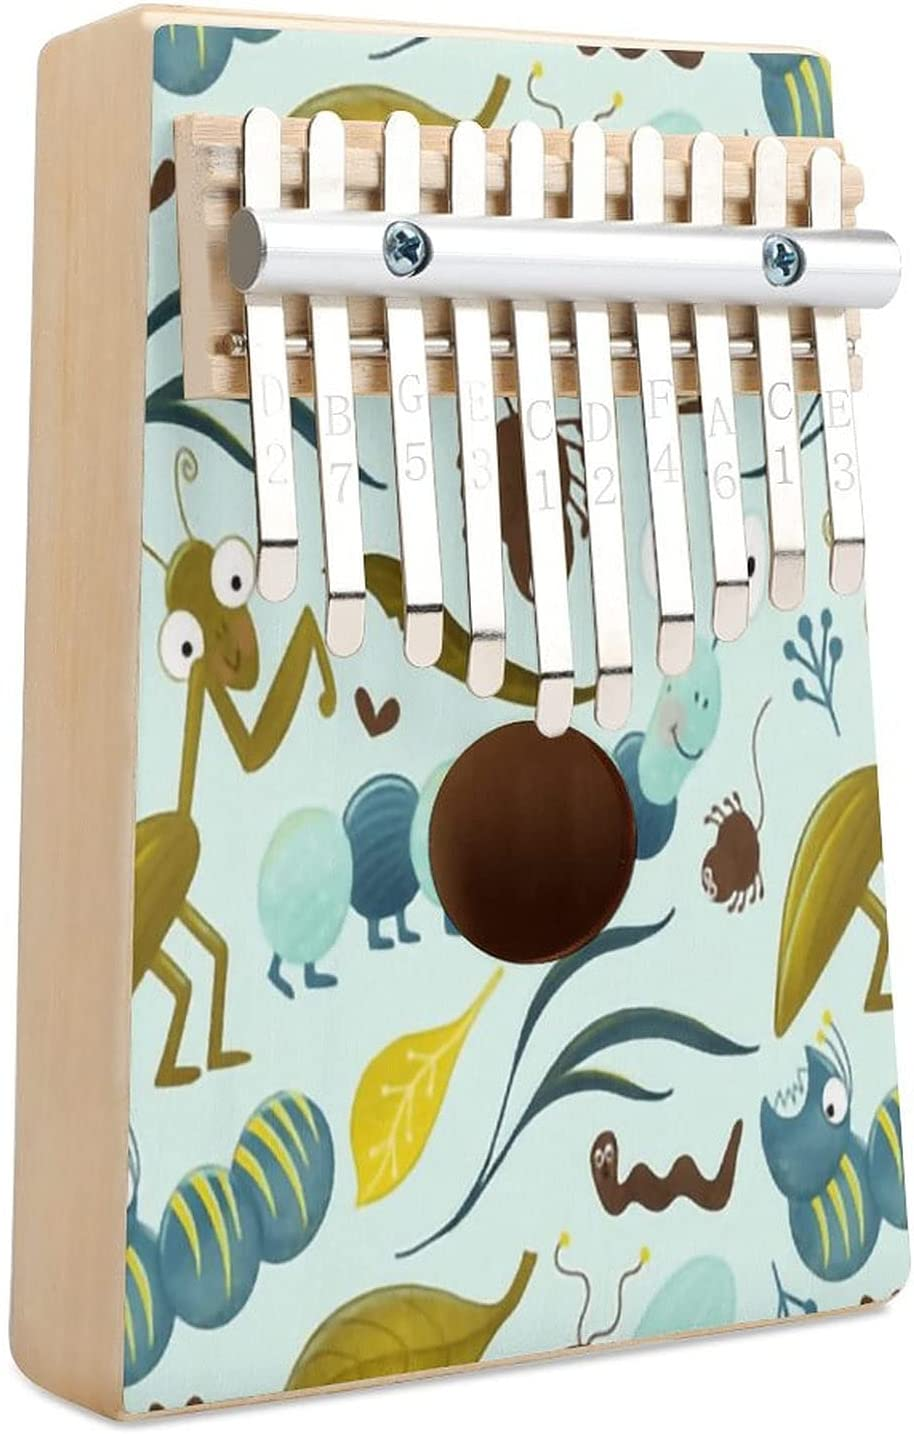 All items in the store Buggin Out Kalimba Thumb Piano Finger Max 63% OFF Instr Musical Key 10